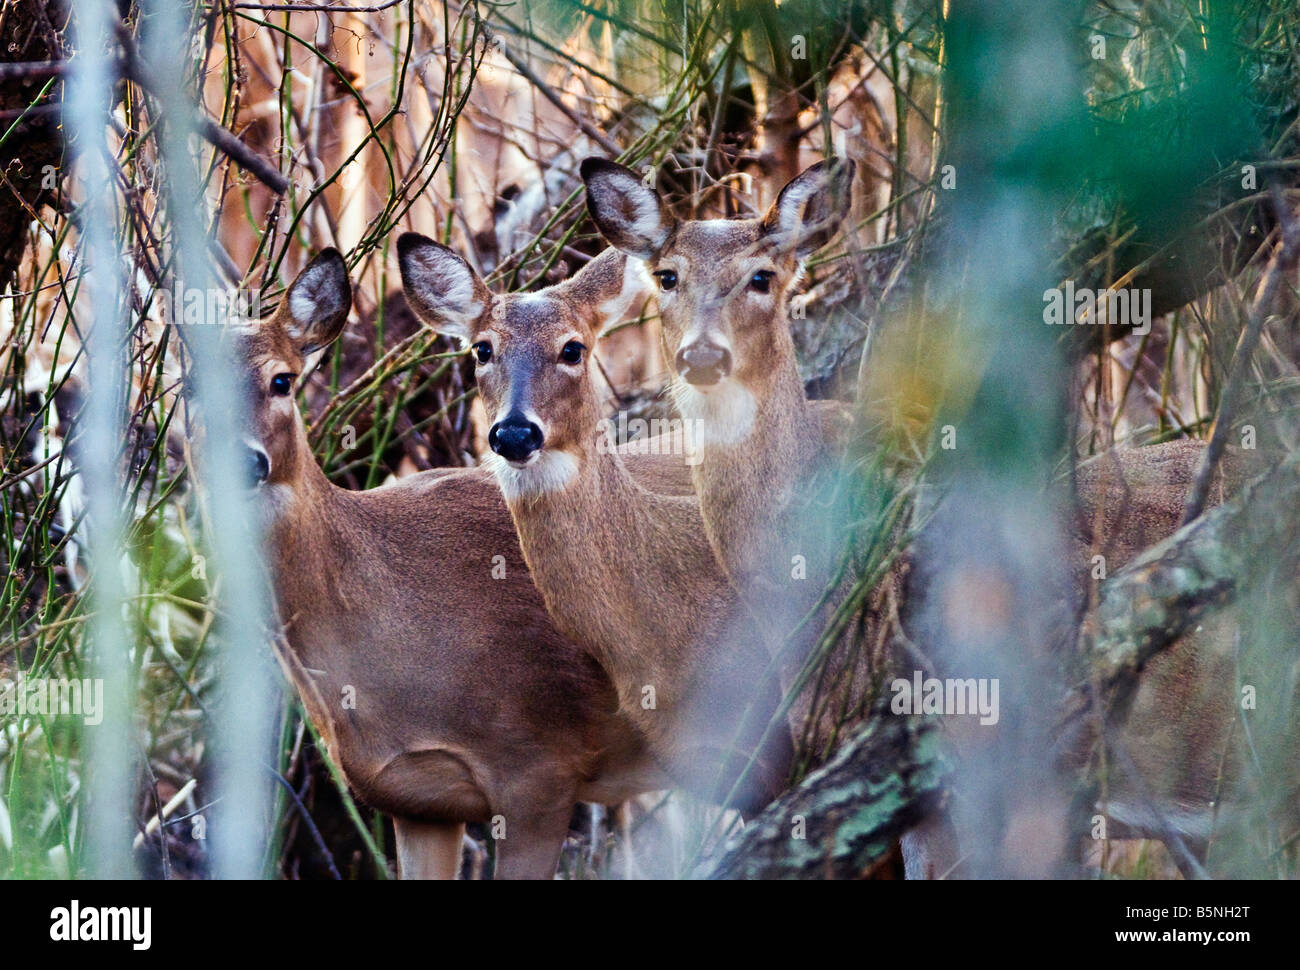 White tailed deer, Odocoileus virginianus, in the woods, on the shore of the Chesapeake Bay, Annapolis, Maryland. - Stock Image